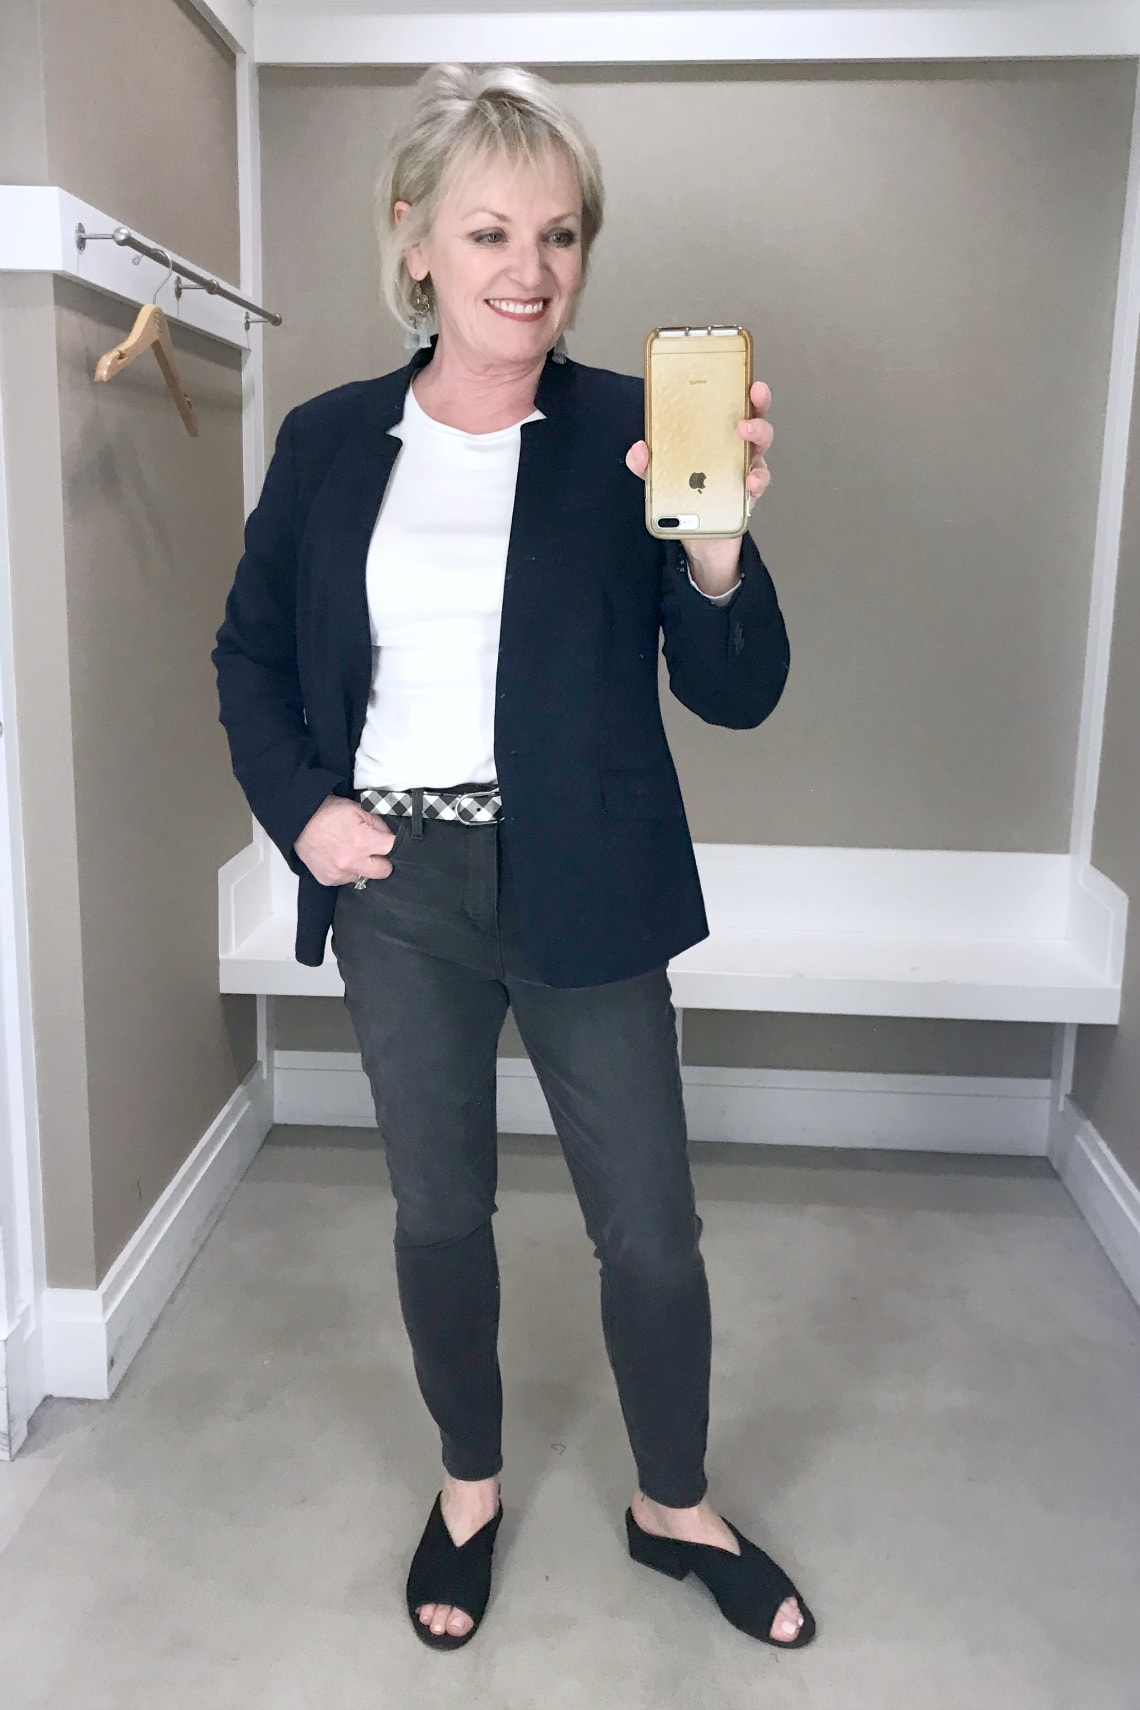 Jennifer of A Well Styled Life wearing Aberdeen knit blazer and gray jeans from Talbot